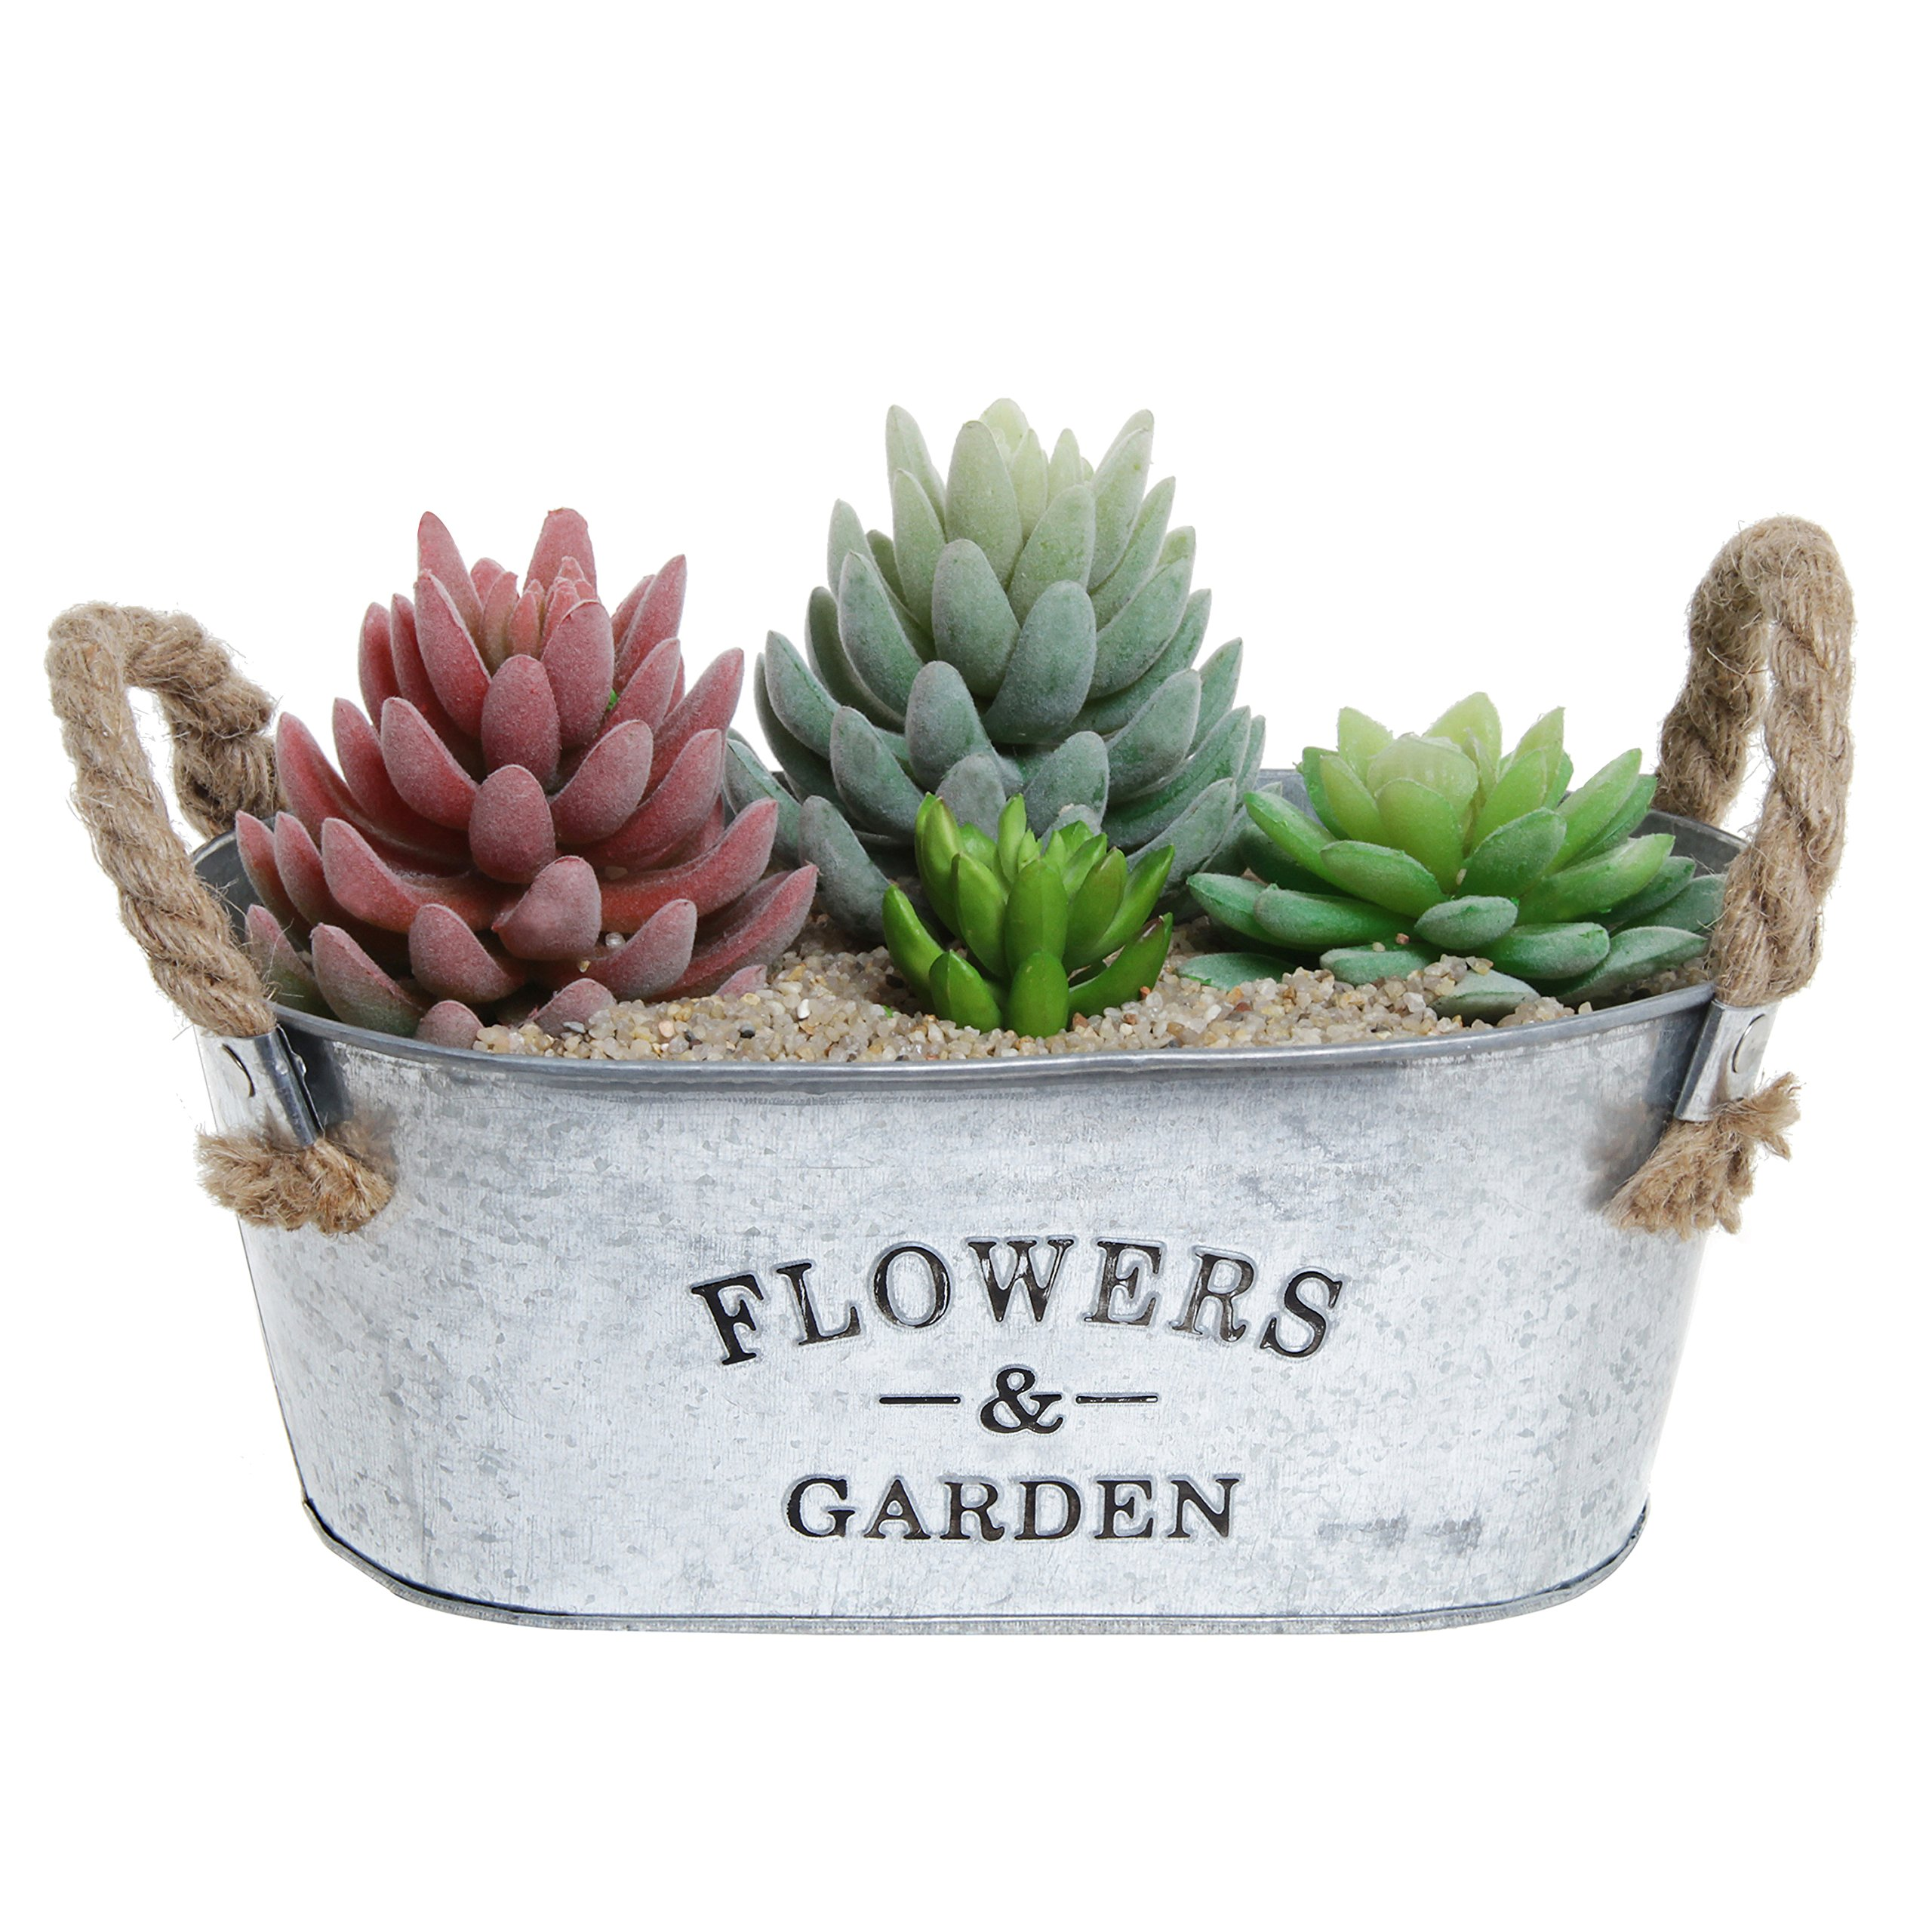 Rustic 'Flowers & Garden' Bucket Design Small Metal Succulent Plant Container w/ Twine Handles - MyGift by MyGift